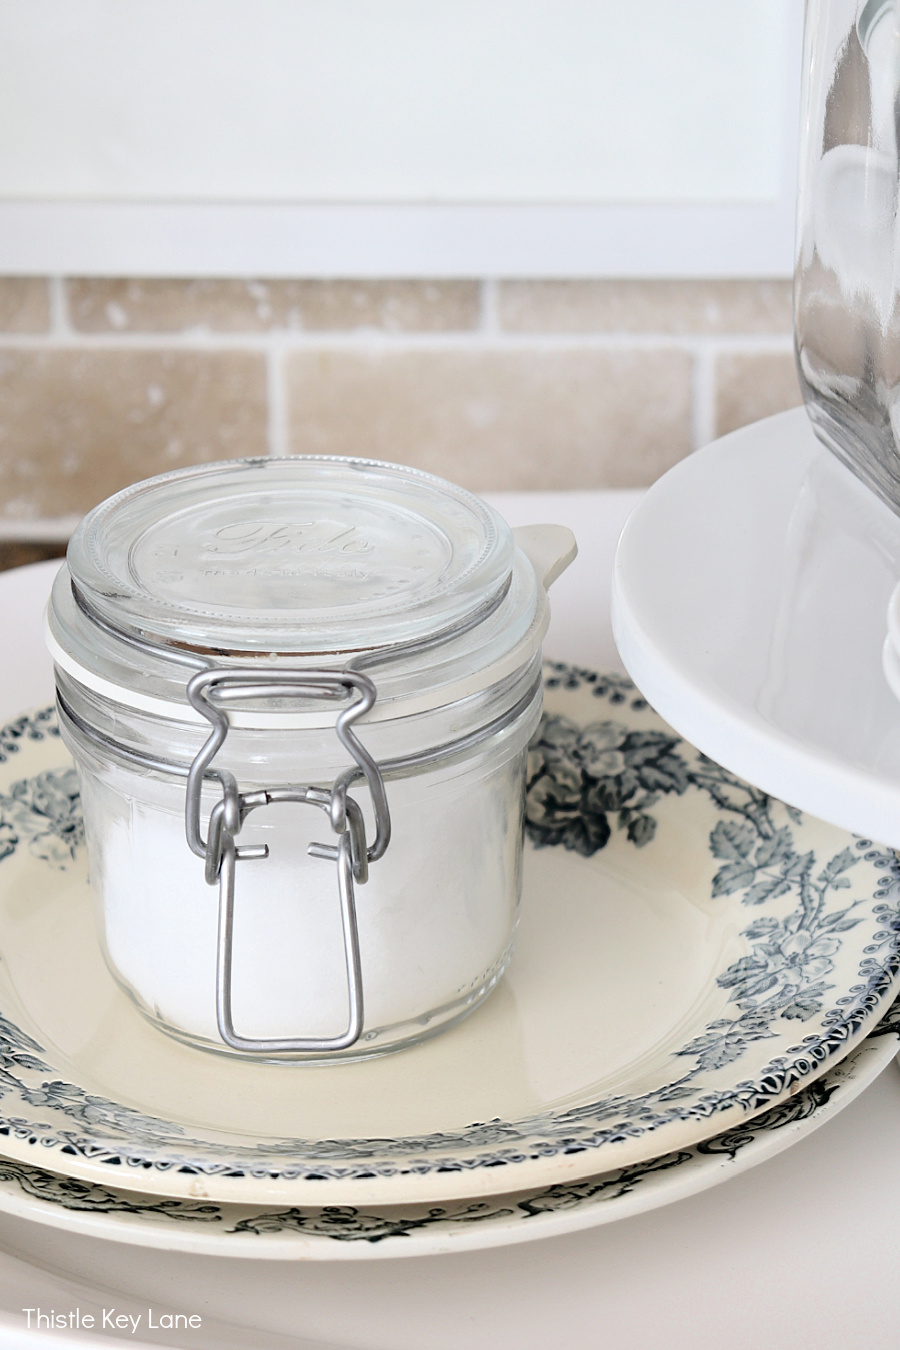 Vintage blue and white plates with a jar of sugar - Using Trays To Control Kitchen Clutter.